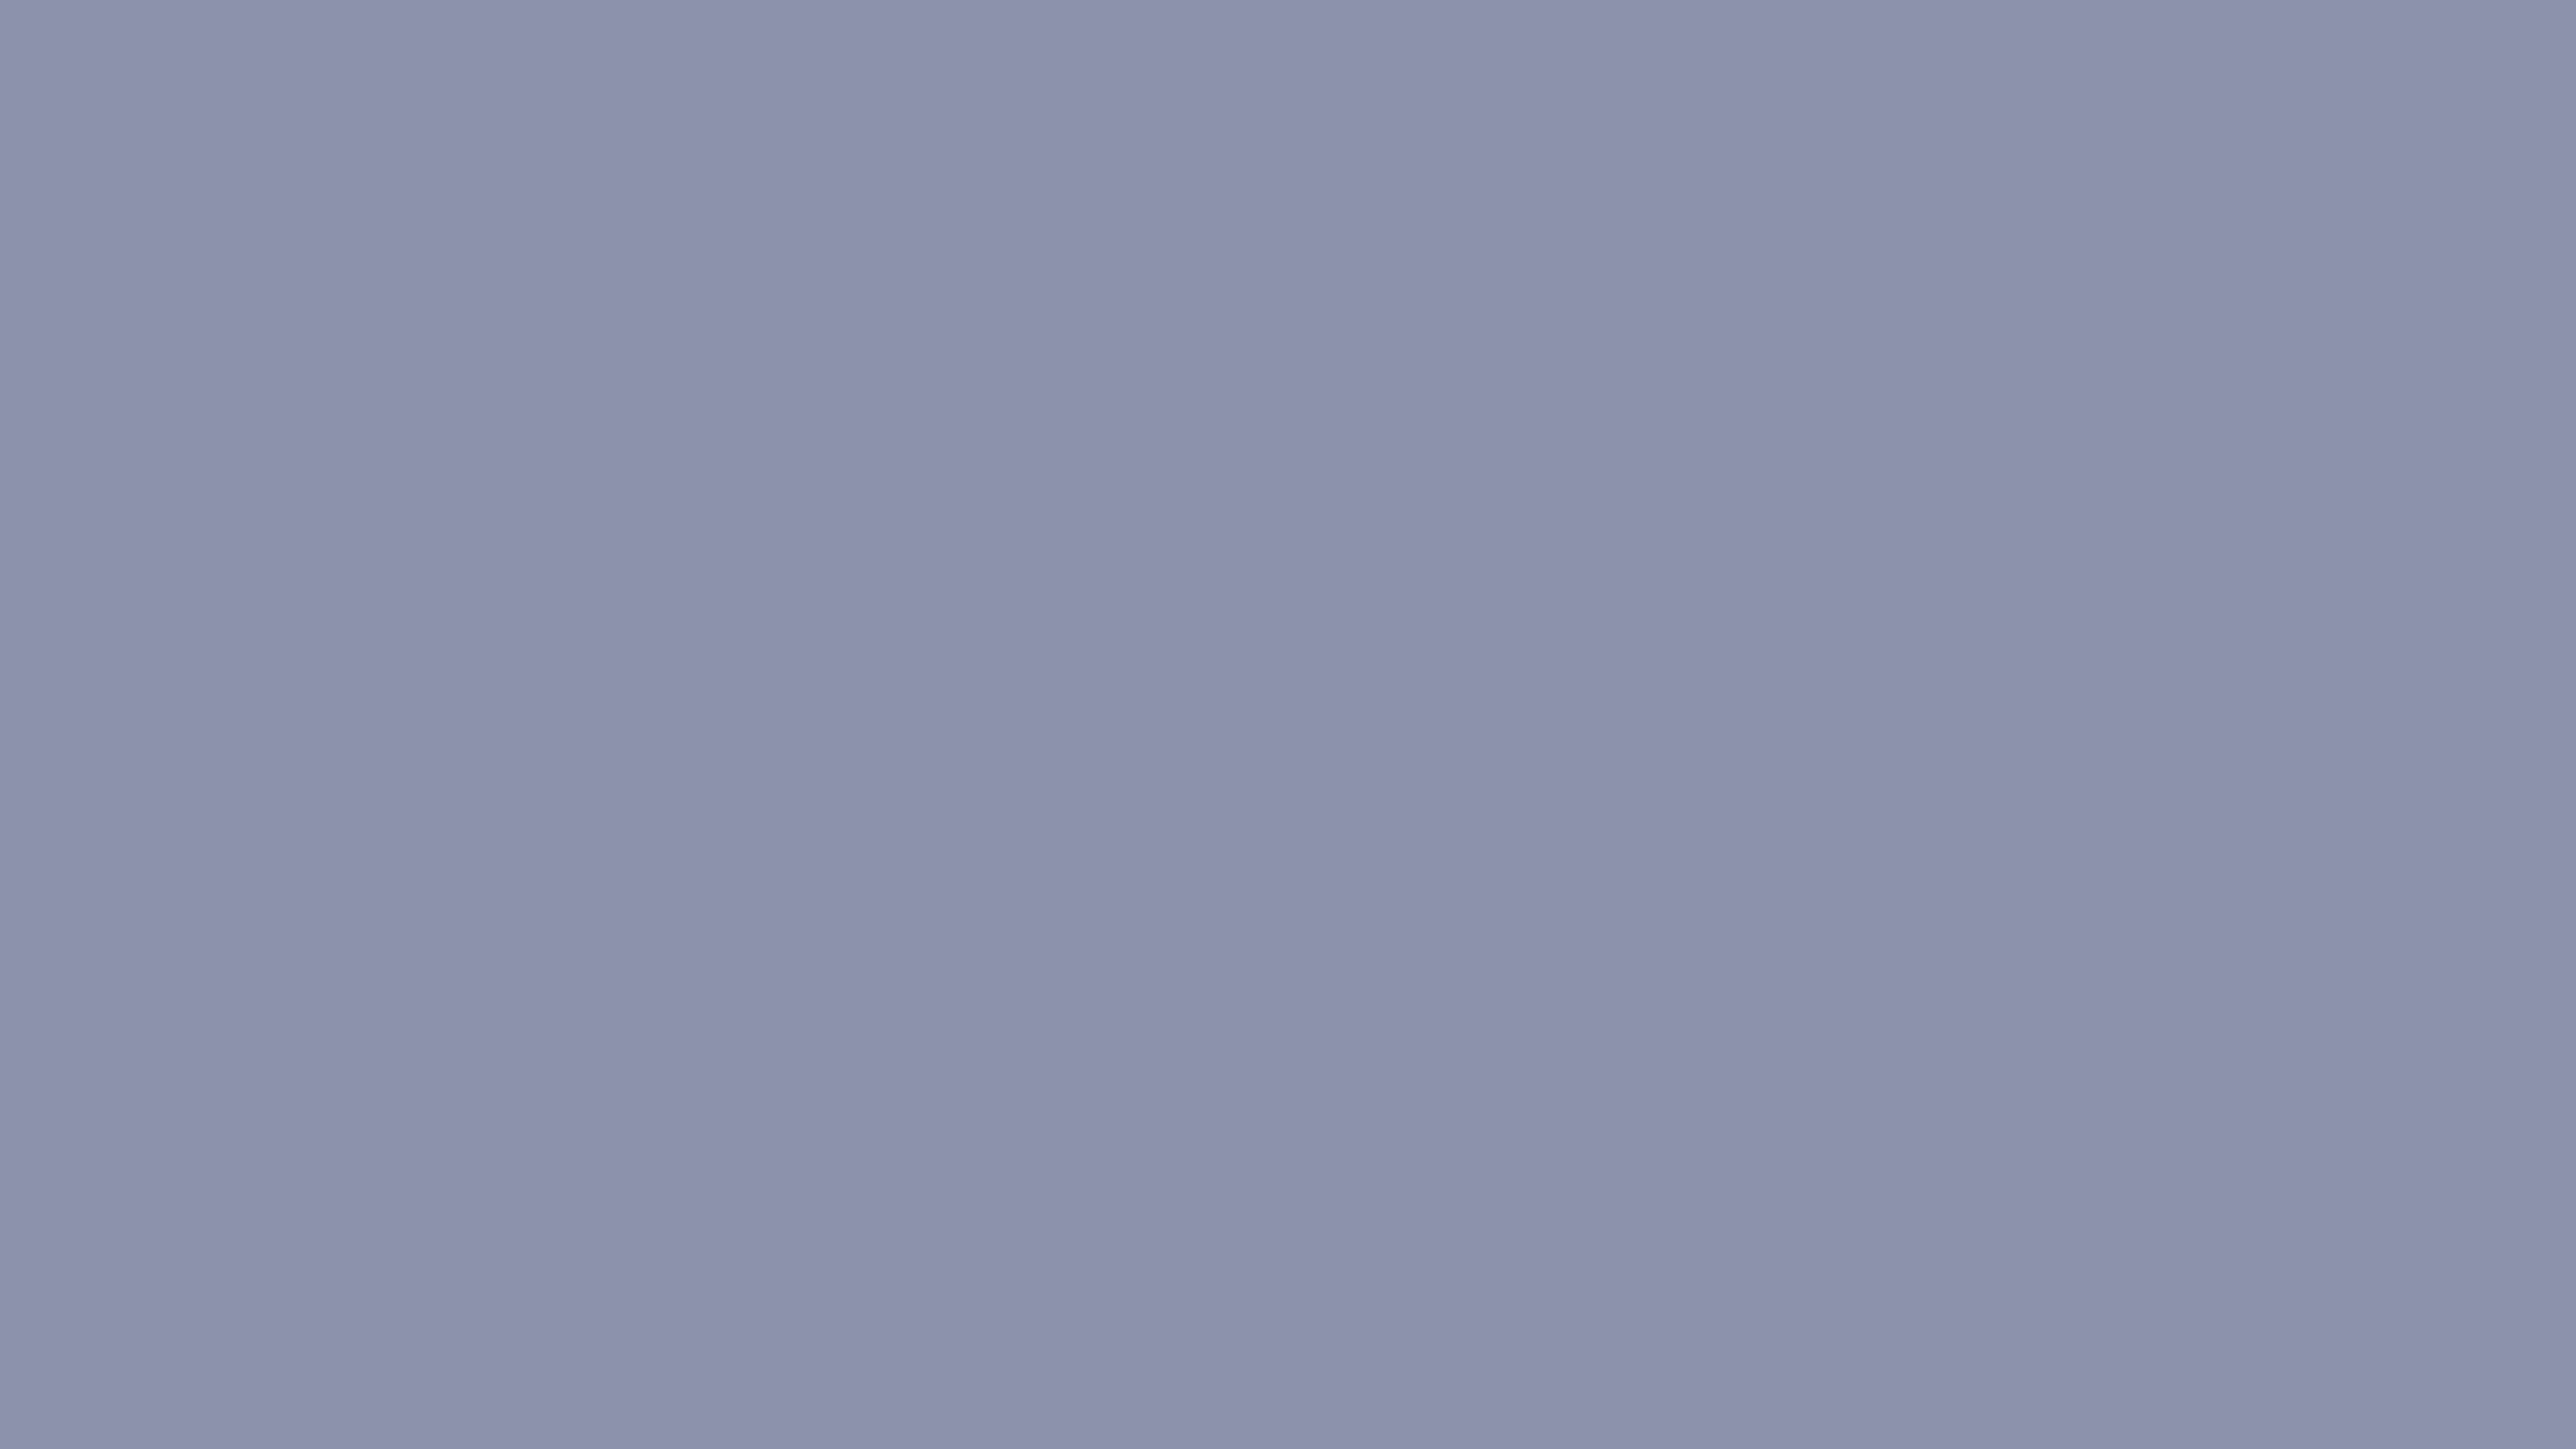 7680x4320 Gray-blue Solid Color Background